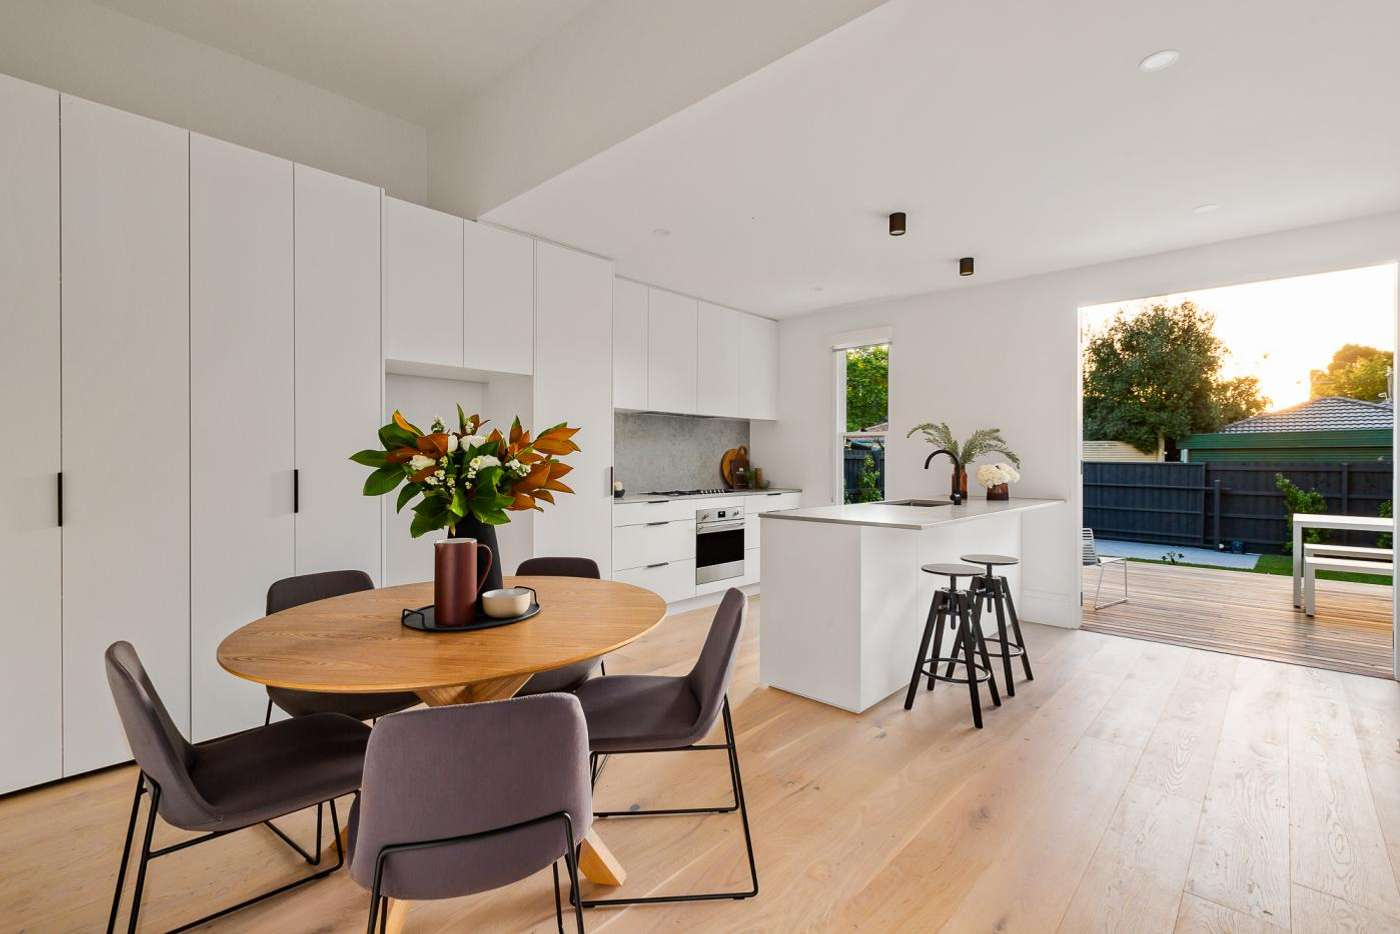 Sixth view of Homely house listing, 15 Deakin Street, Malvern East VIC 3145